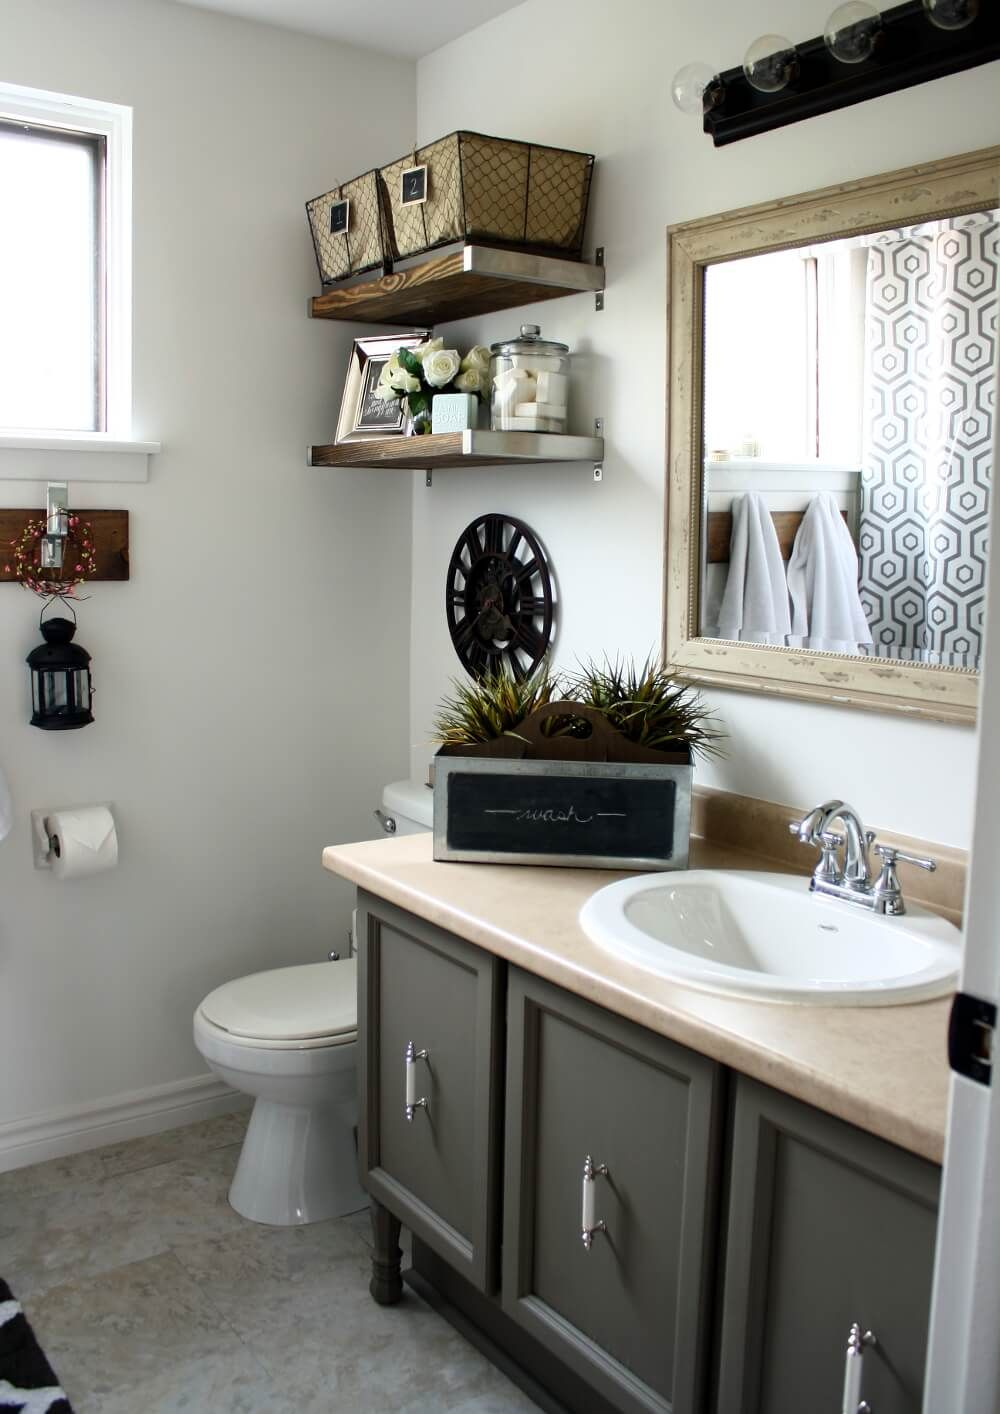 industrial chic updates to dated fixtures small bathroom on amazing small bathroom designs and ideas id=24562